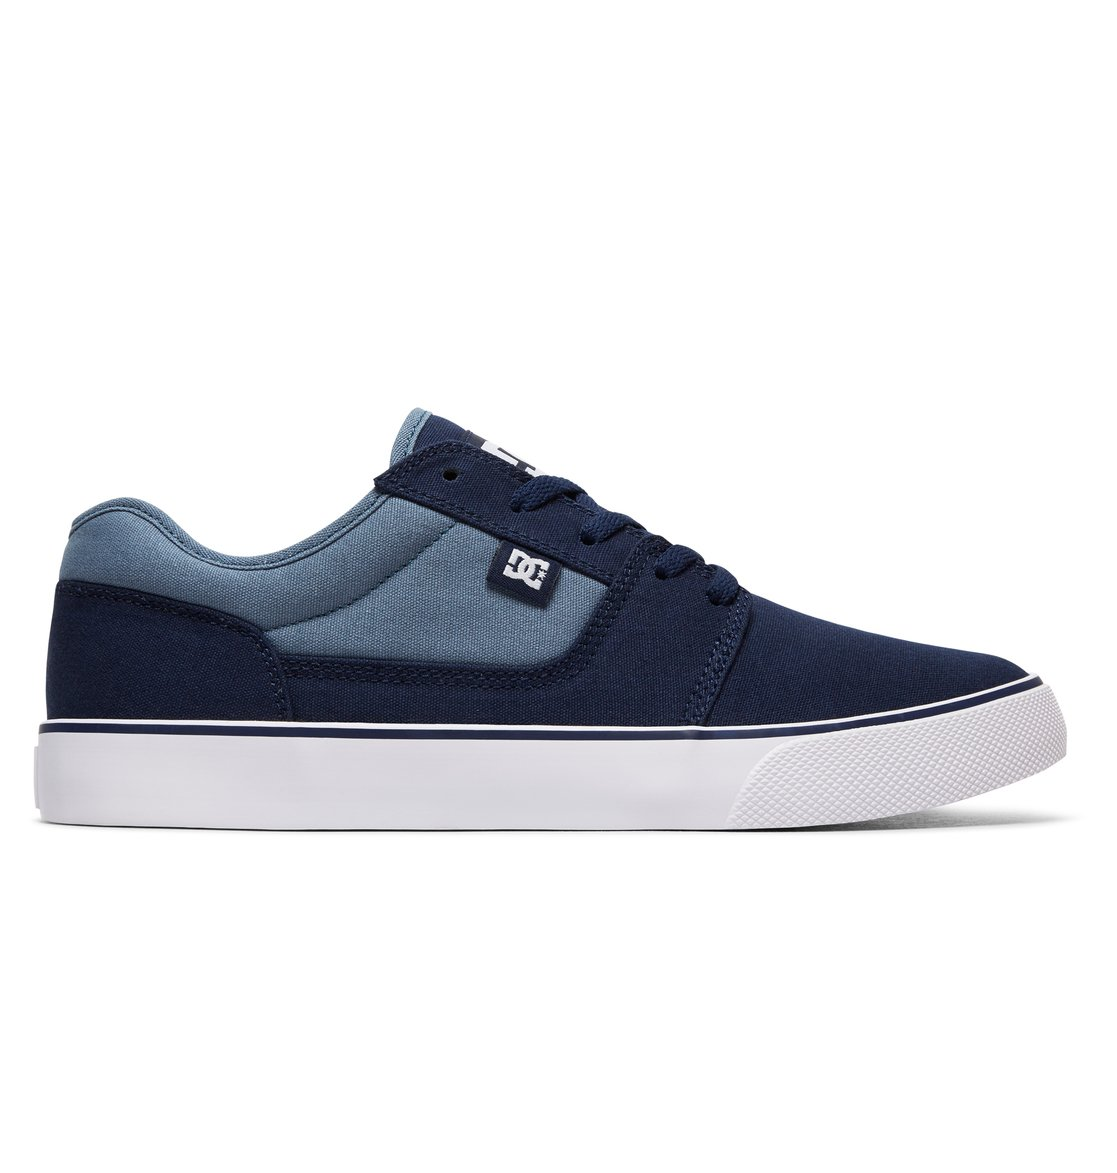 Chaussures DC Shoes Casual femme 2YIUQPDB